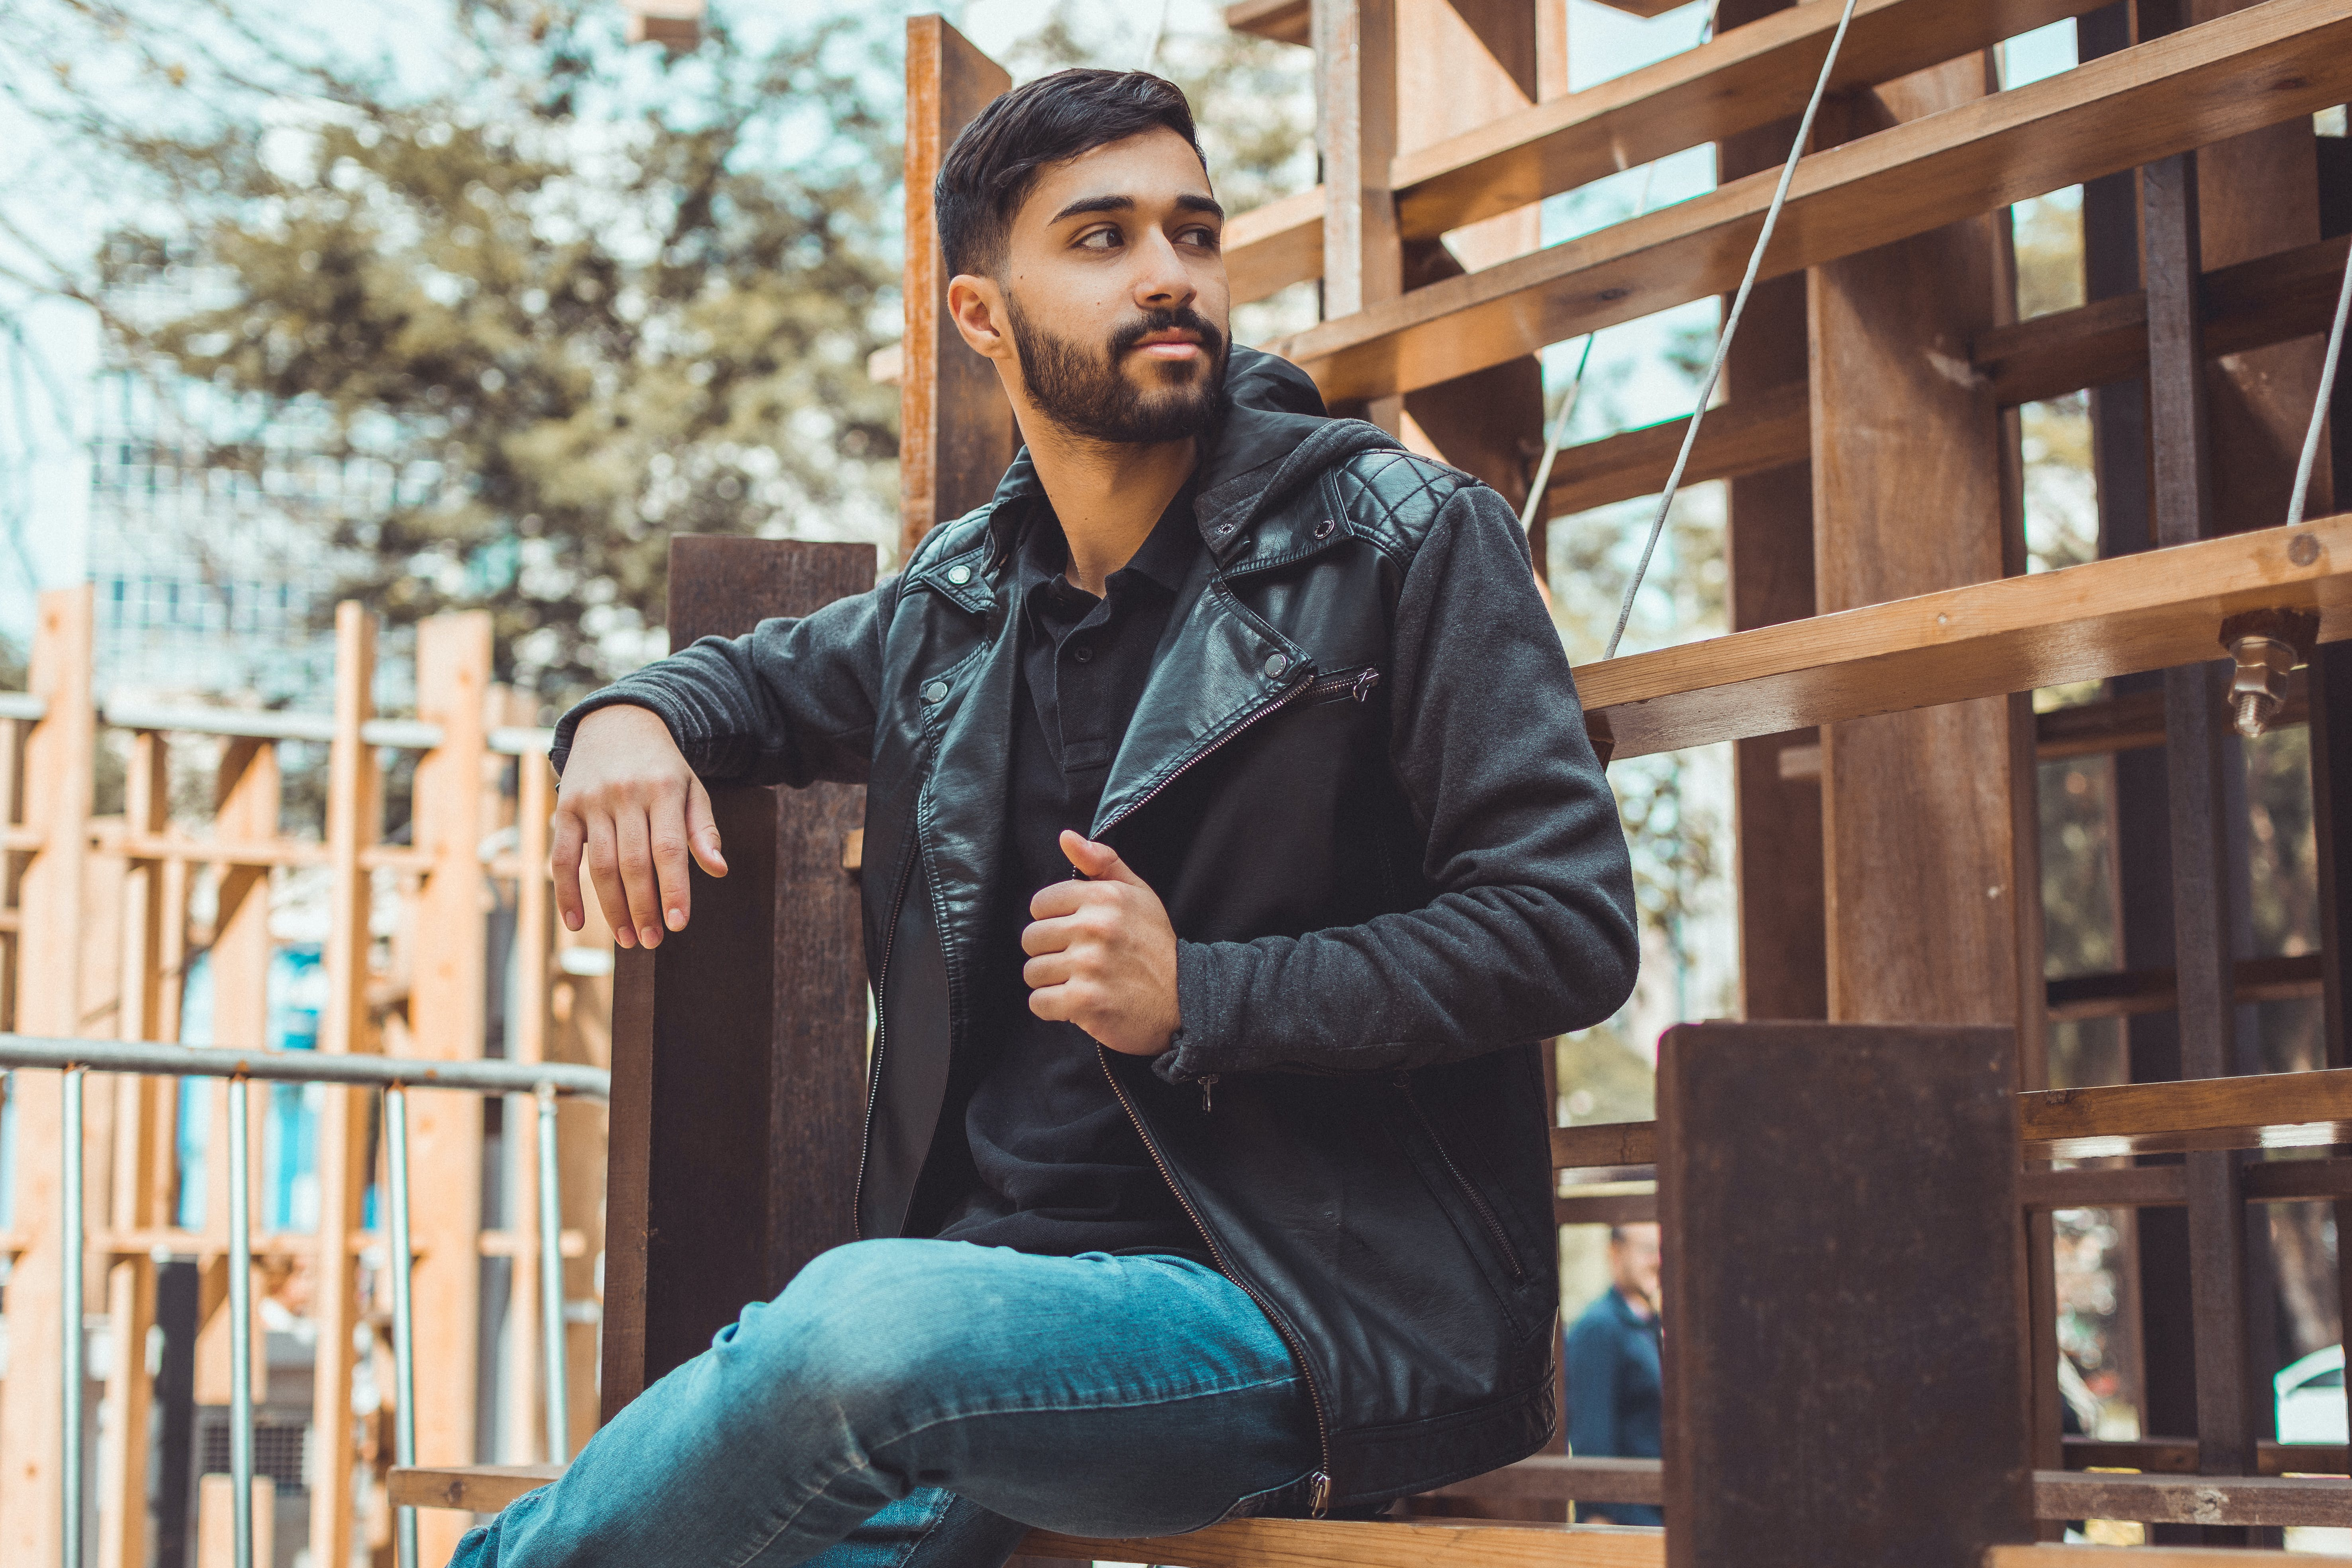 Man Wearing Black Jacket and Jeans Sitting on Brown Wooden Chair